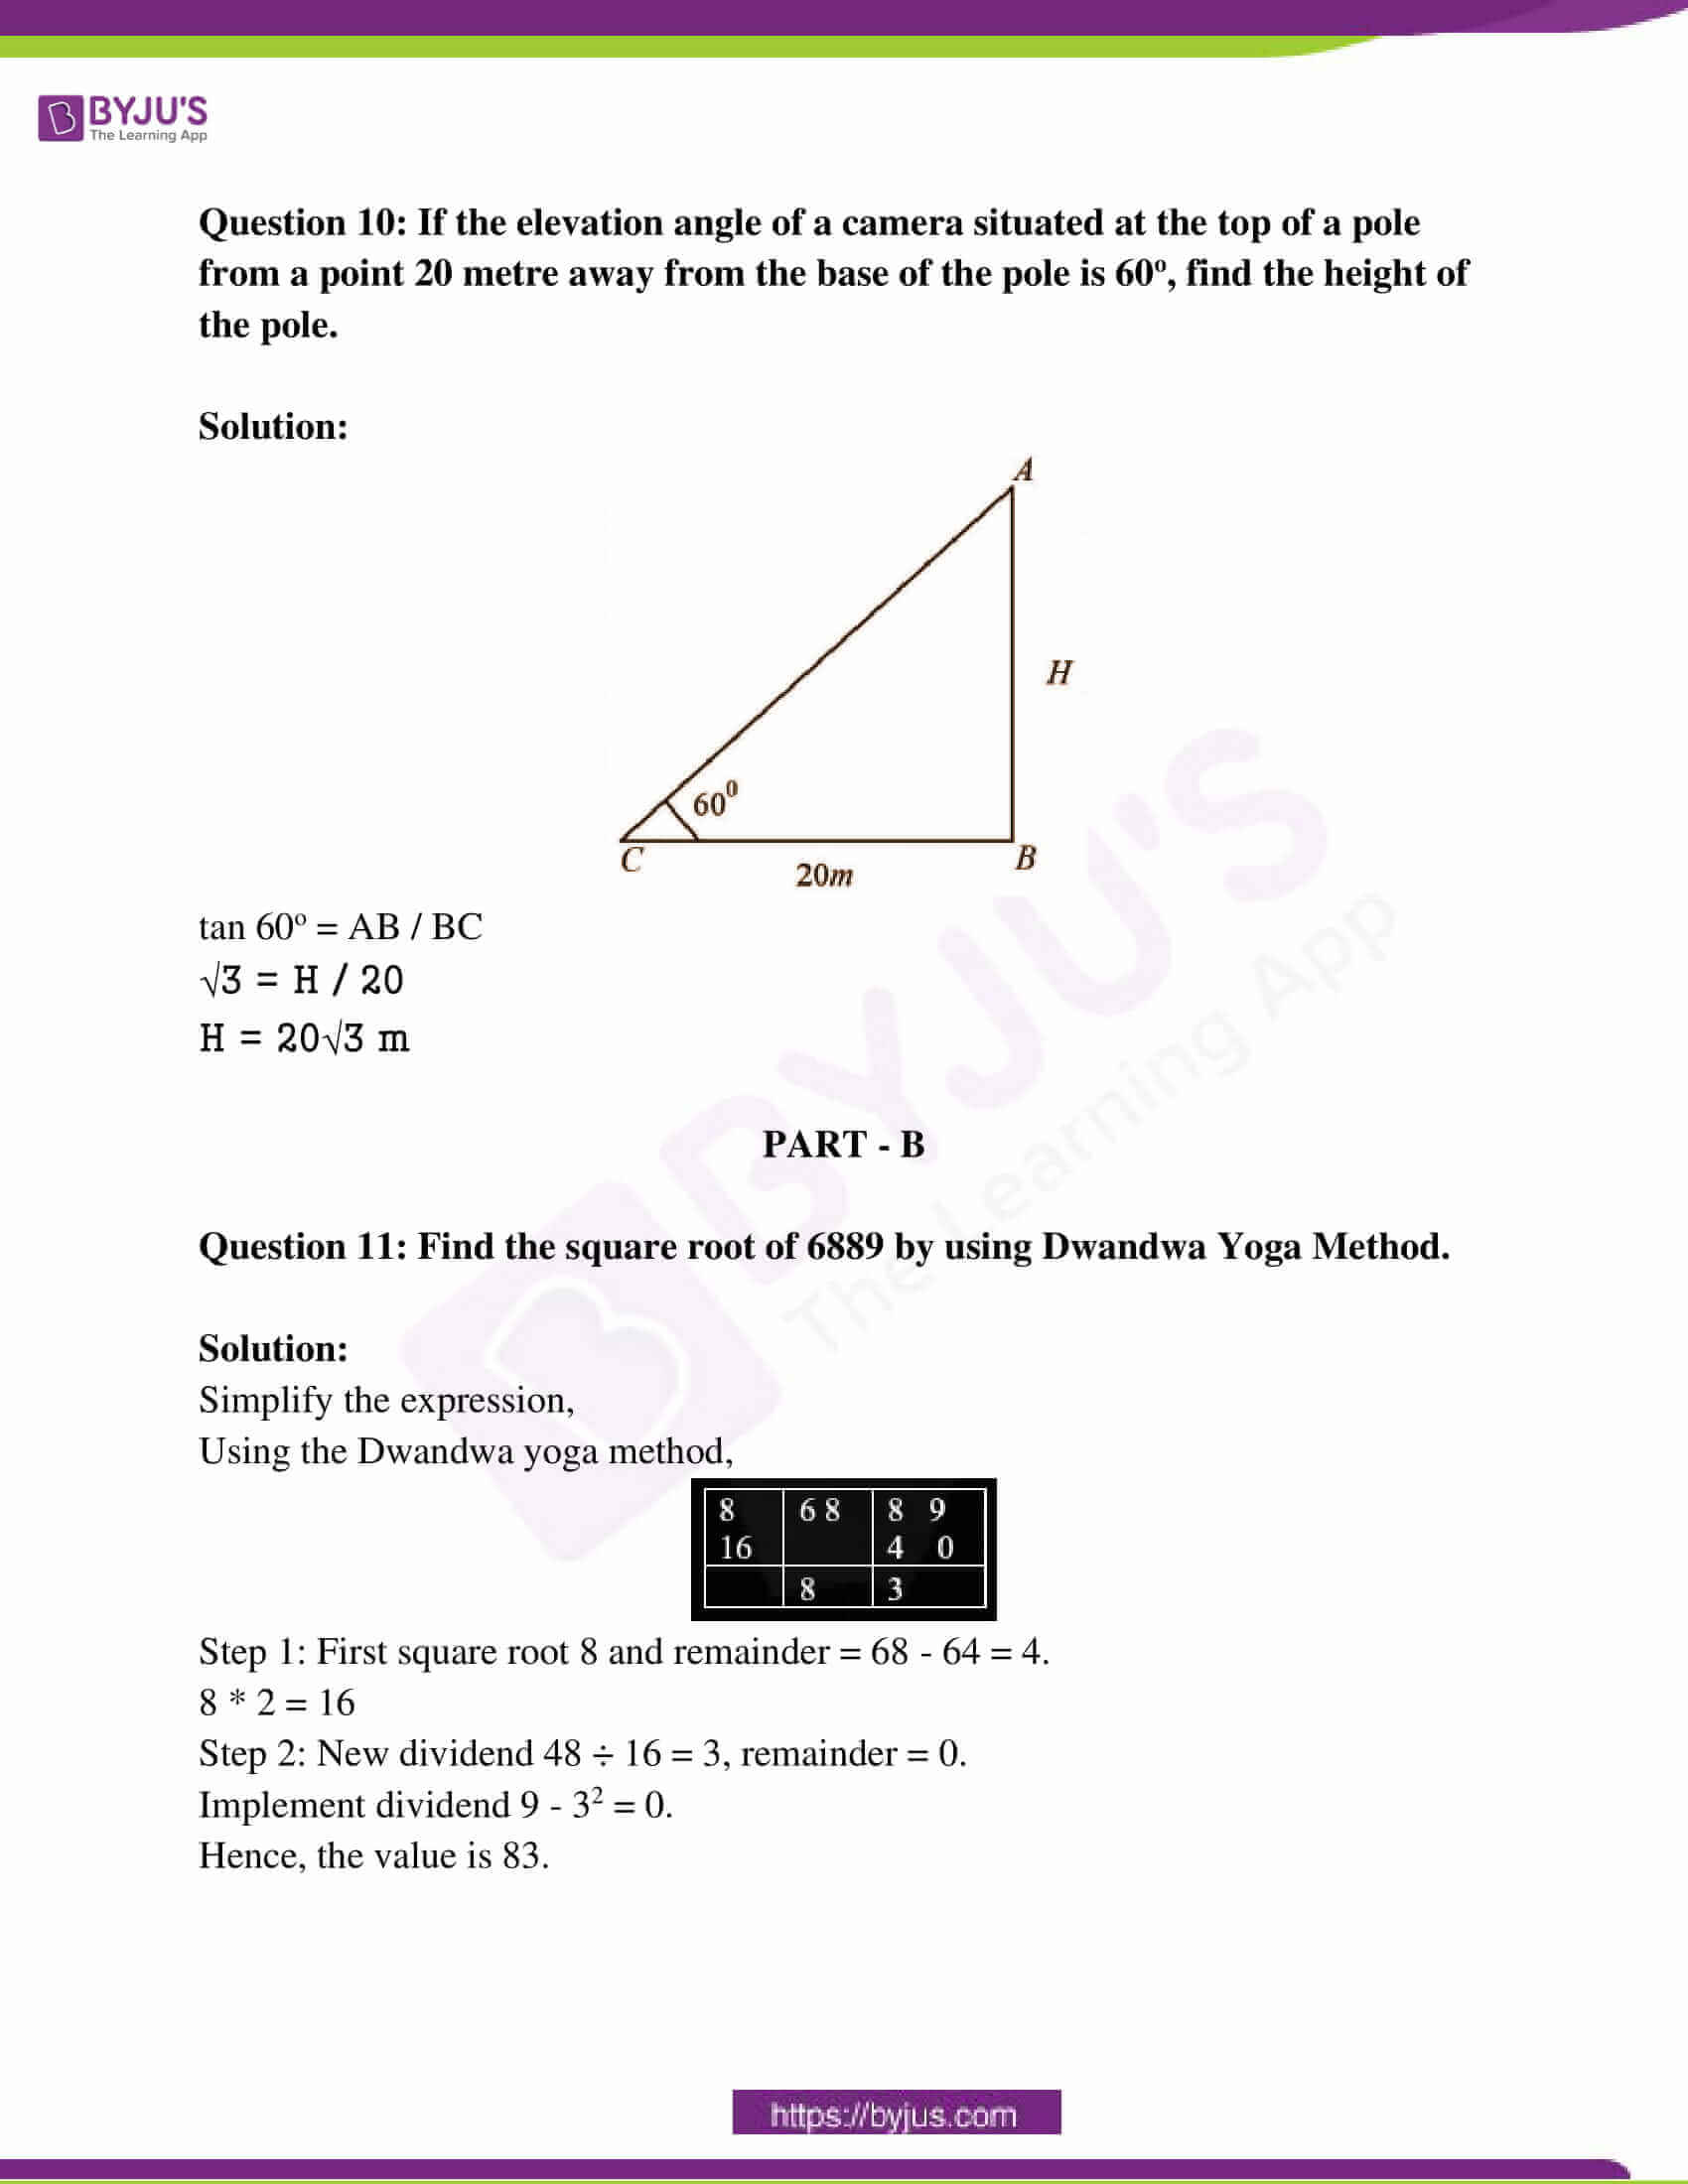 rajasthan board class 10 examination question paper sol march 2018 05